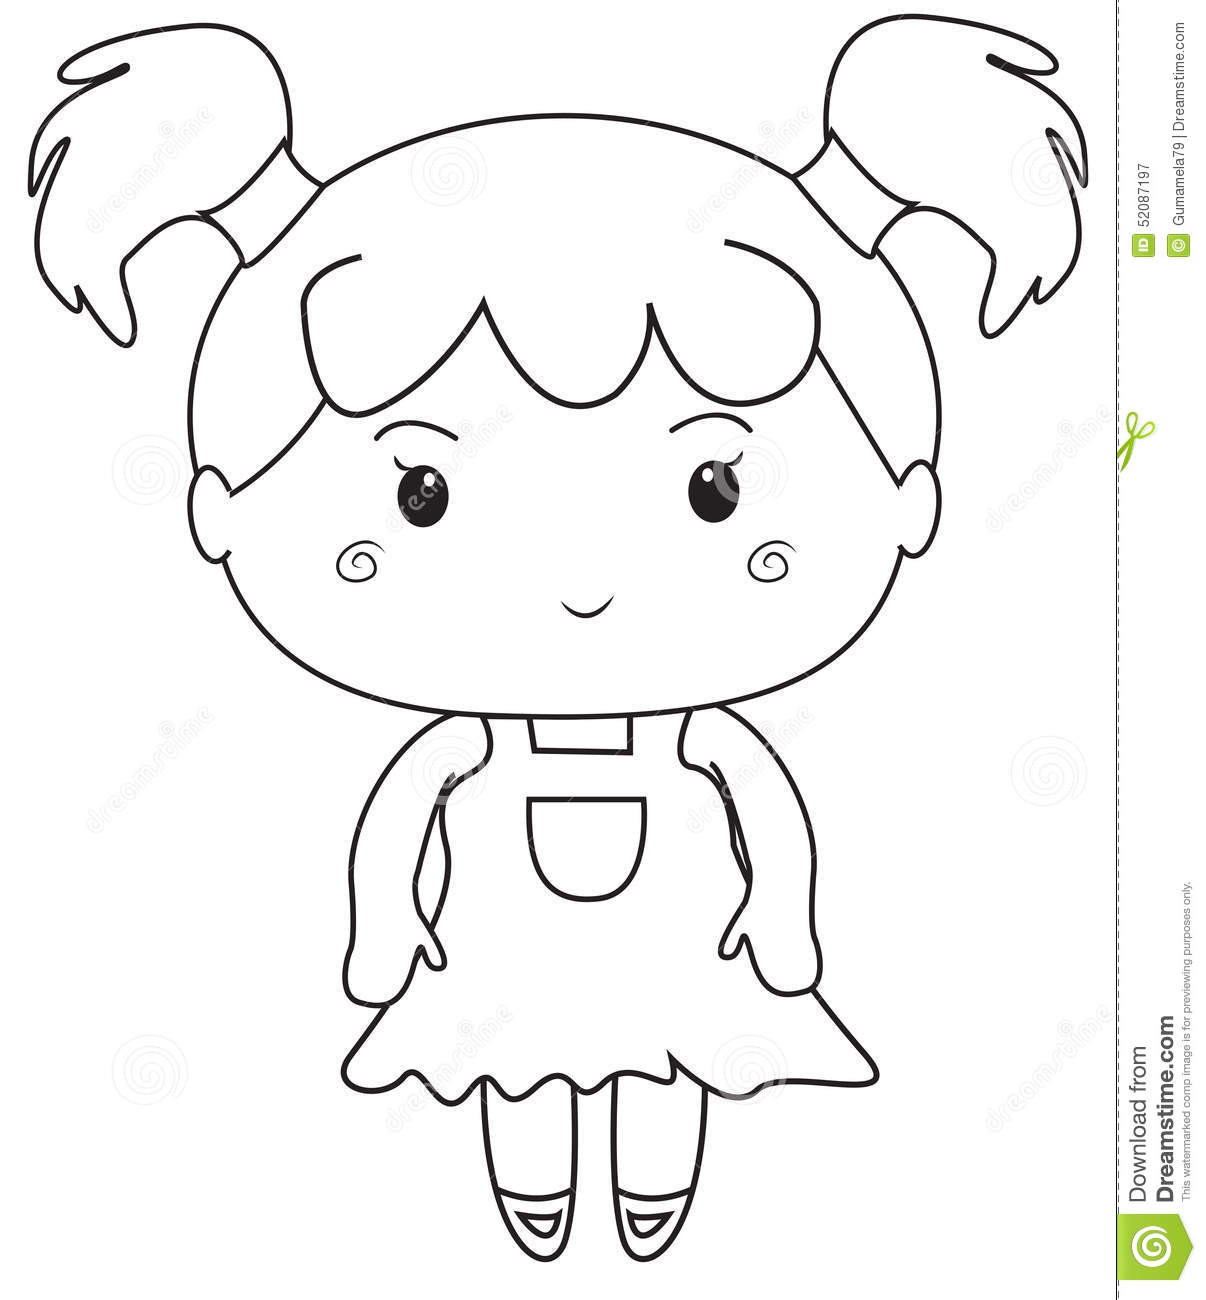 Best ideas about New Coloring Pages For Girls . Save or Pin Free Printable Coloring Pages For Girls ly Vriendenboek Now.